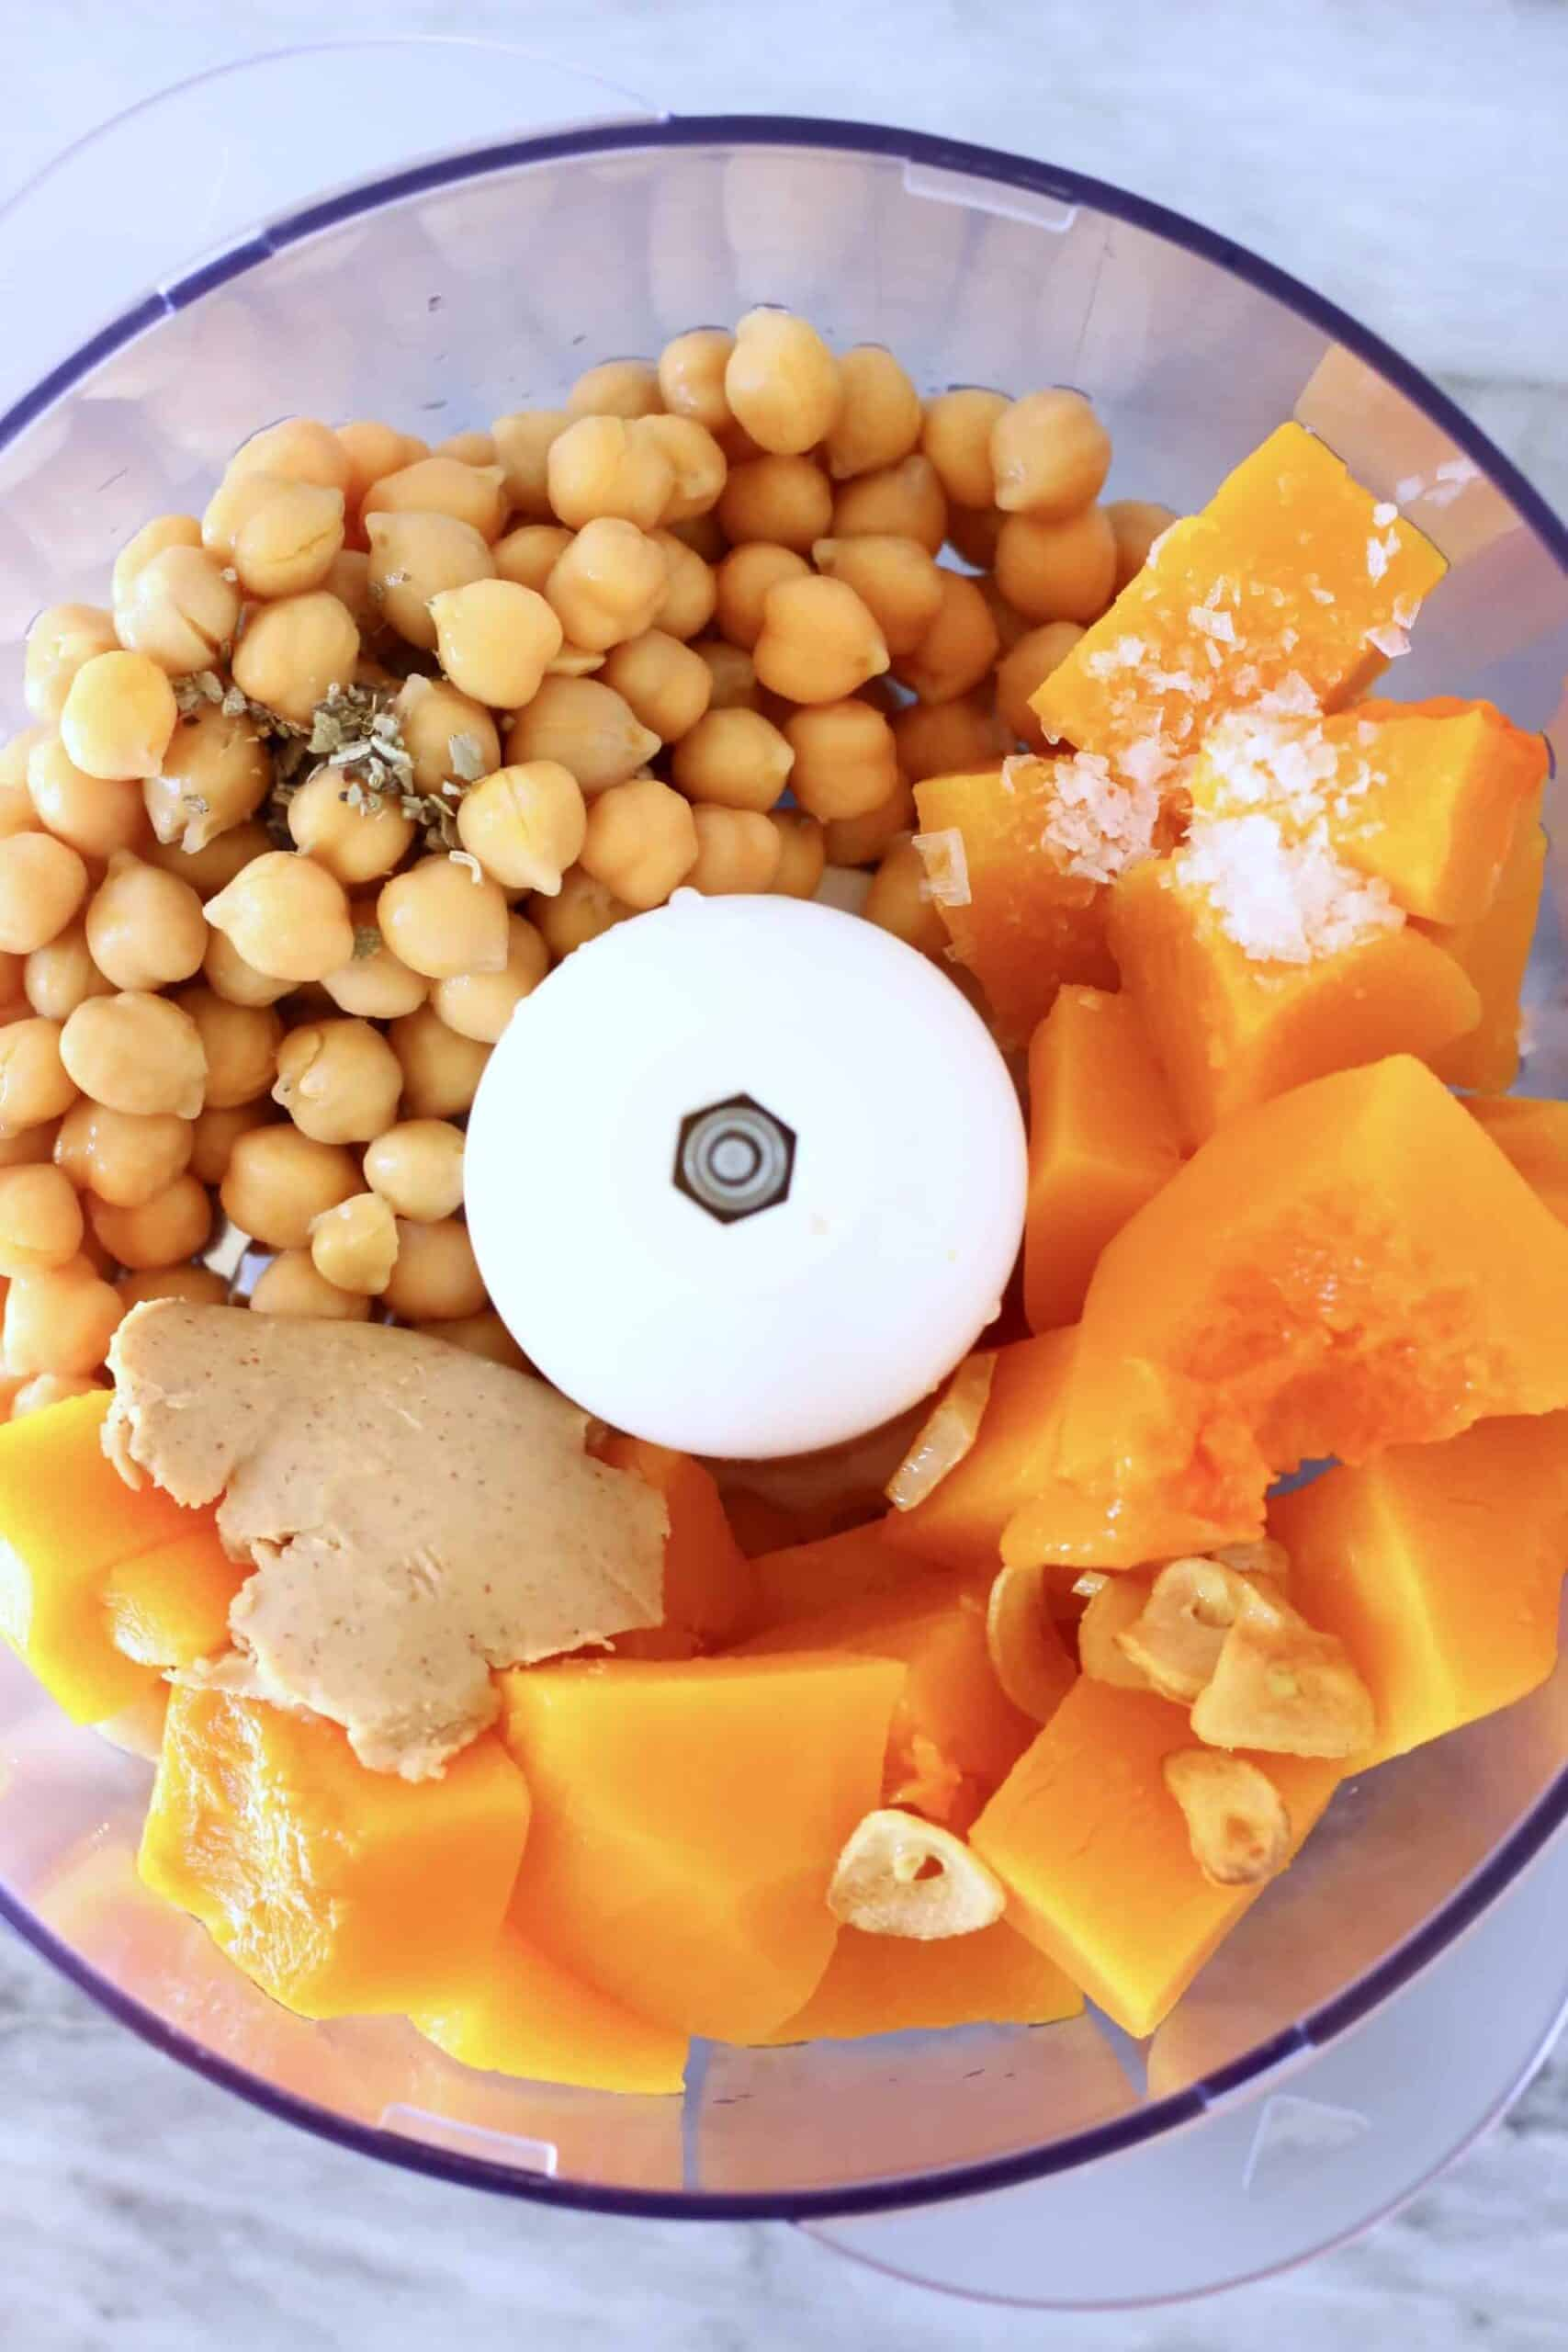 Chickpeas, dried sage, cooked pumpkin pieces, tahini and fried garlic in a food processor